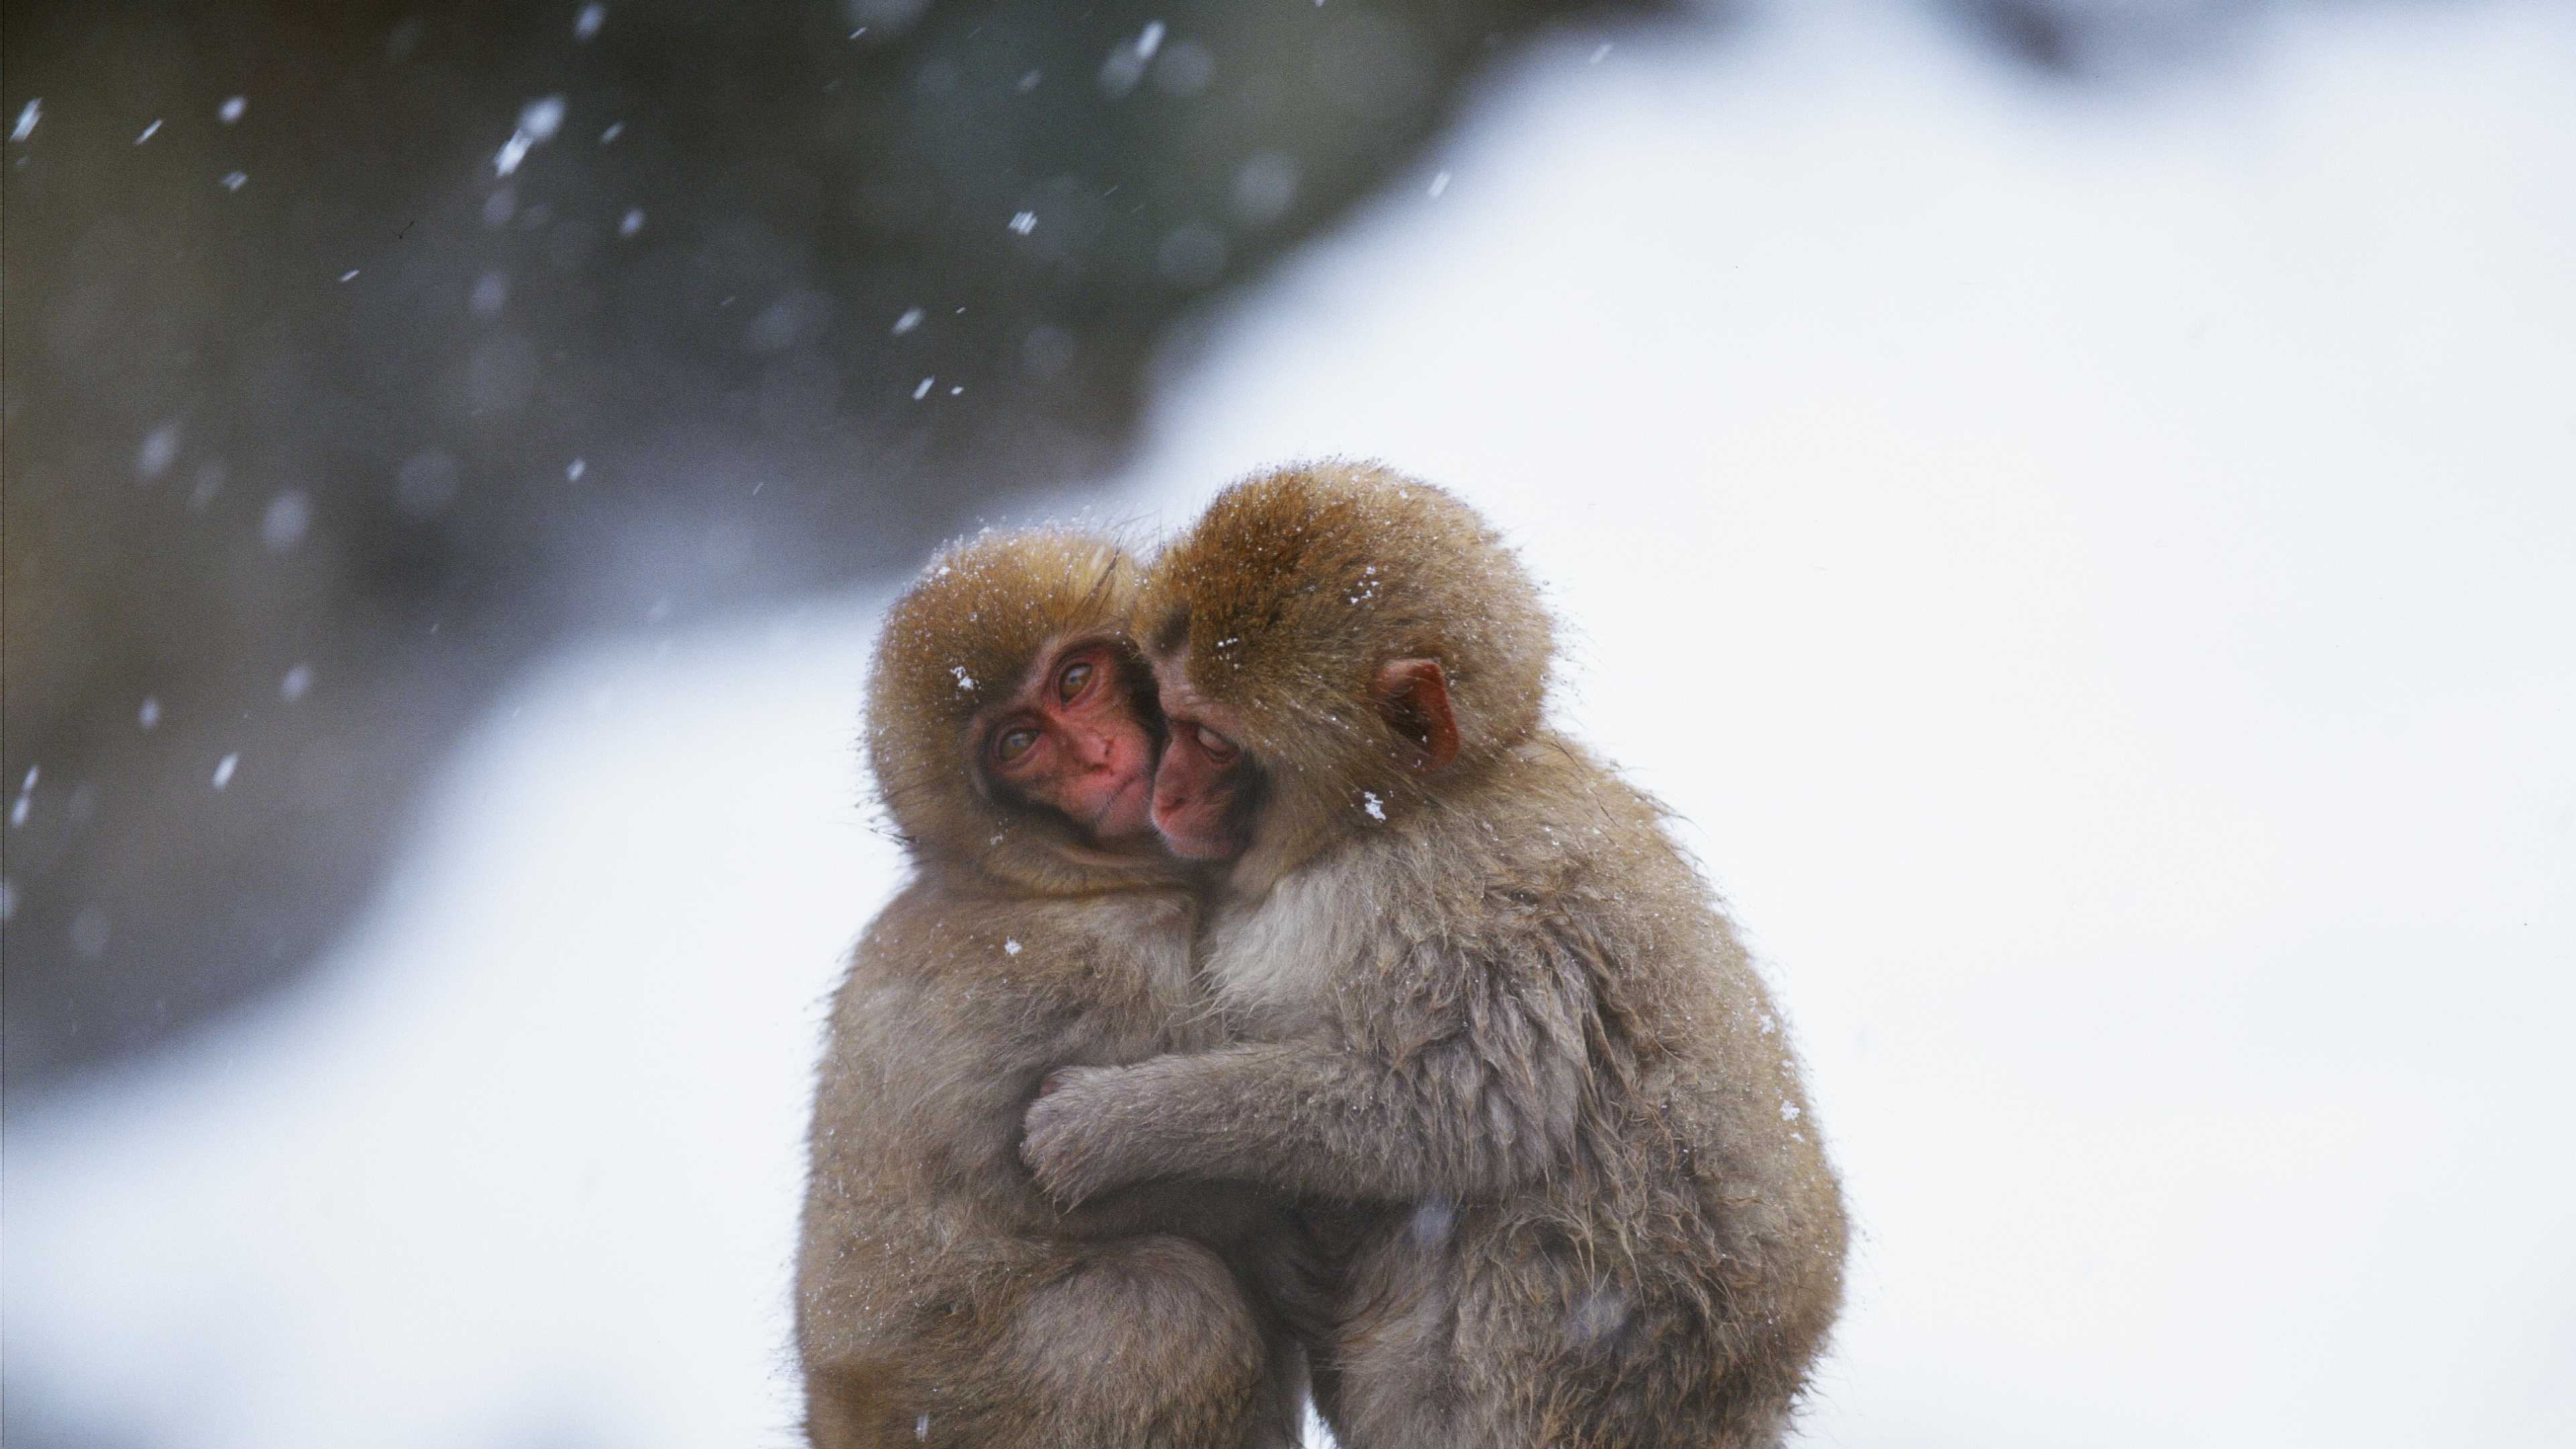 Embrace Between Two Monkeys In A Cold Day